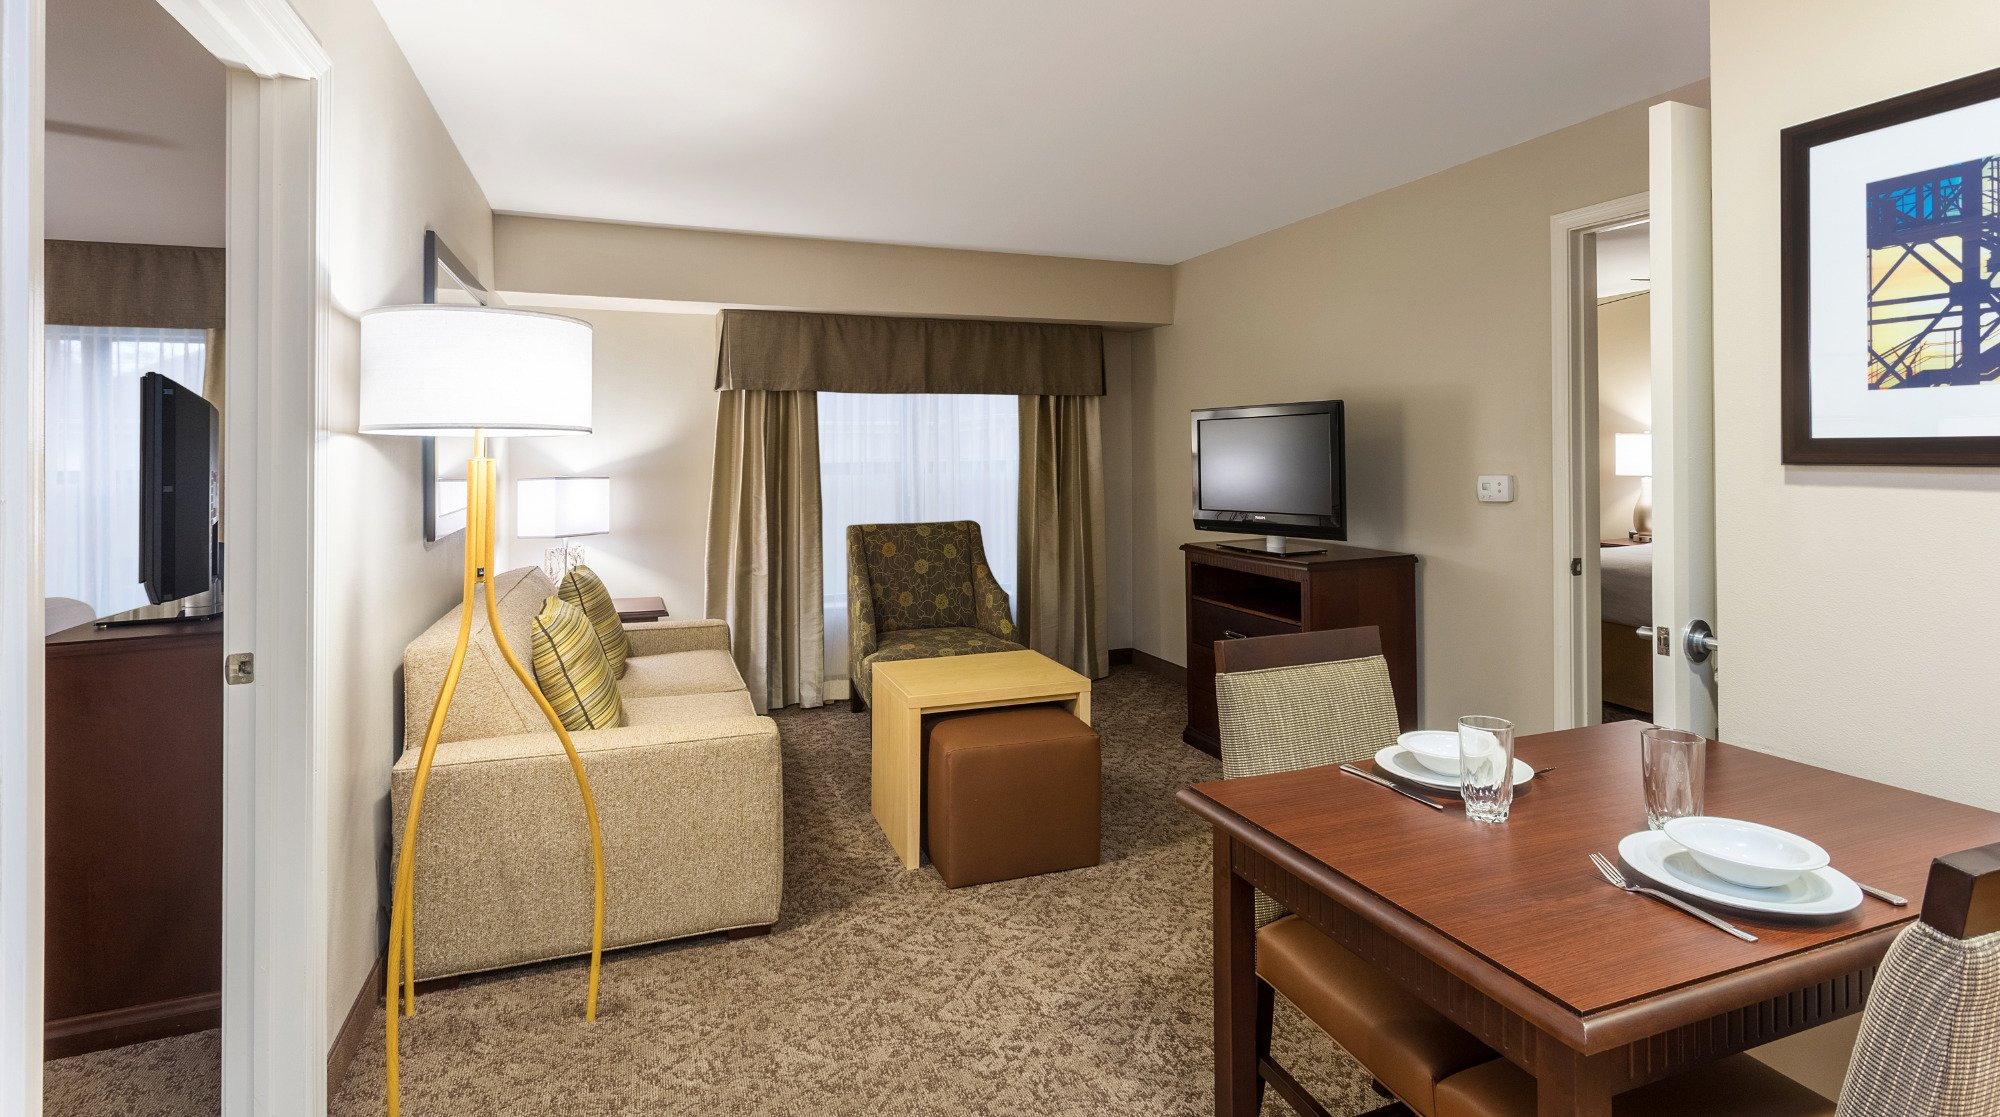 Homewood Suites Shreveport Updated 2017 Hotel Reviews Price Two Bedroom  Suites Dallas Tx Two BedroomTwo Bedroom Suites Dallas Tx tlzholdings com2 Bedroom Hotel Suites In Dallas Tx  Dallas Presidential  . 2 Bedroom Hotel Suites In Dallas Tx. Home Design Ideas